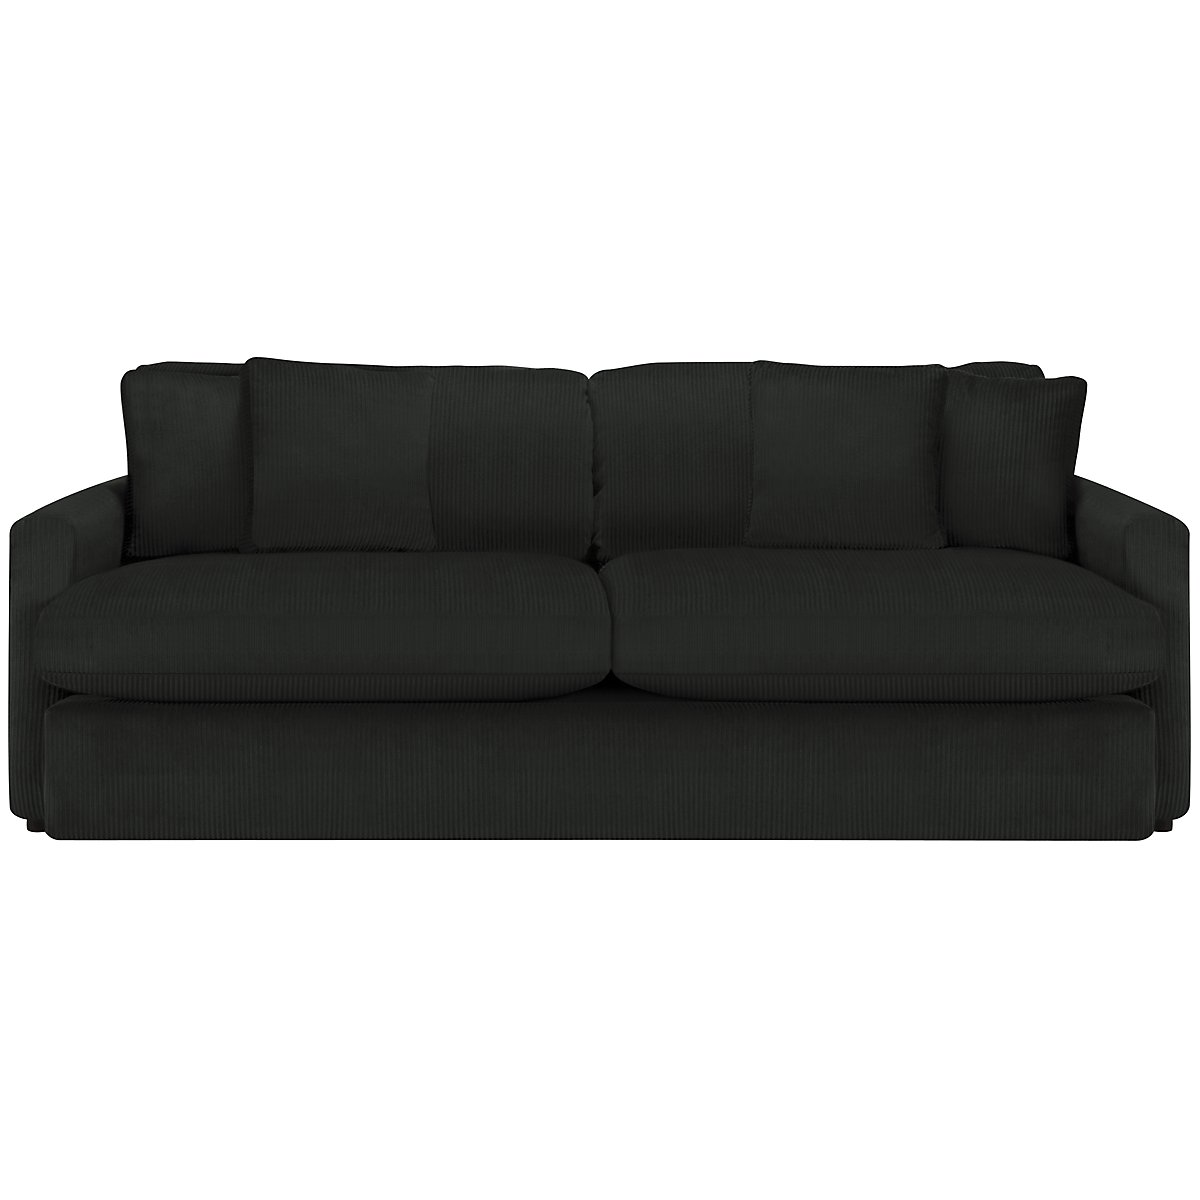 Tara2 Dark Gray Microfiber Sofa